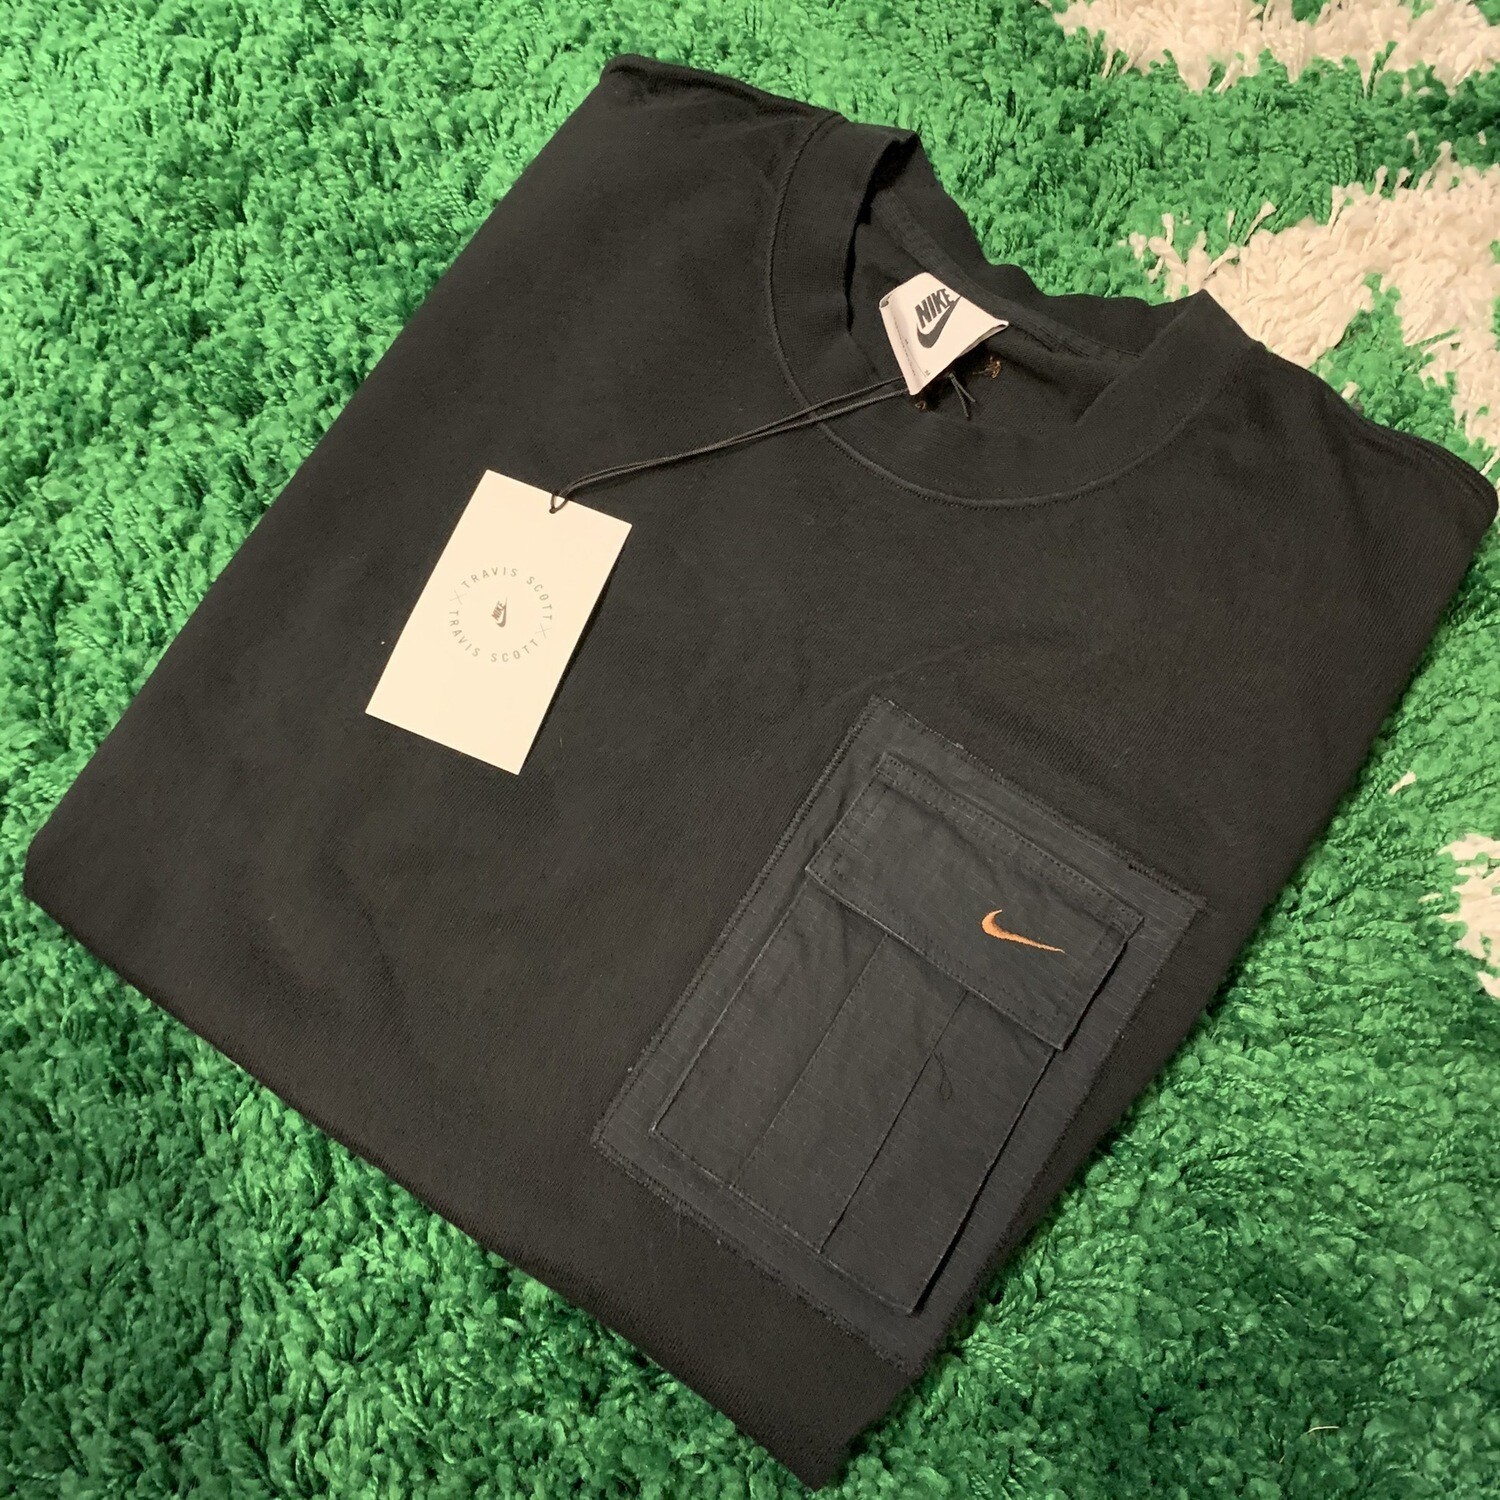 Travis Scott Nike NRG Tee Size Medium